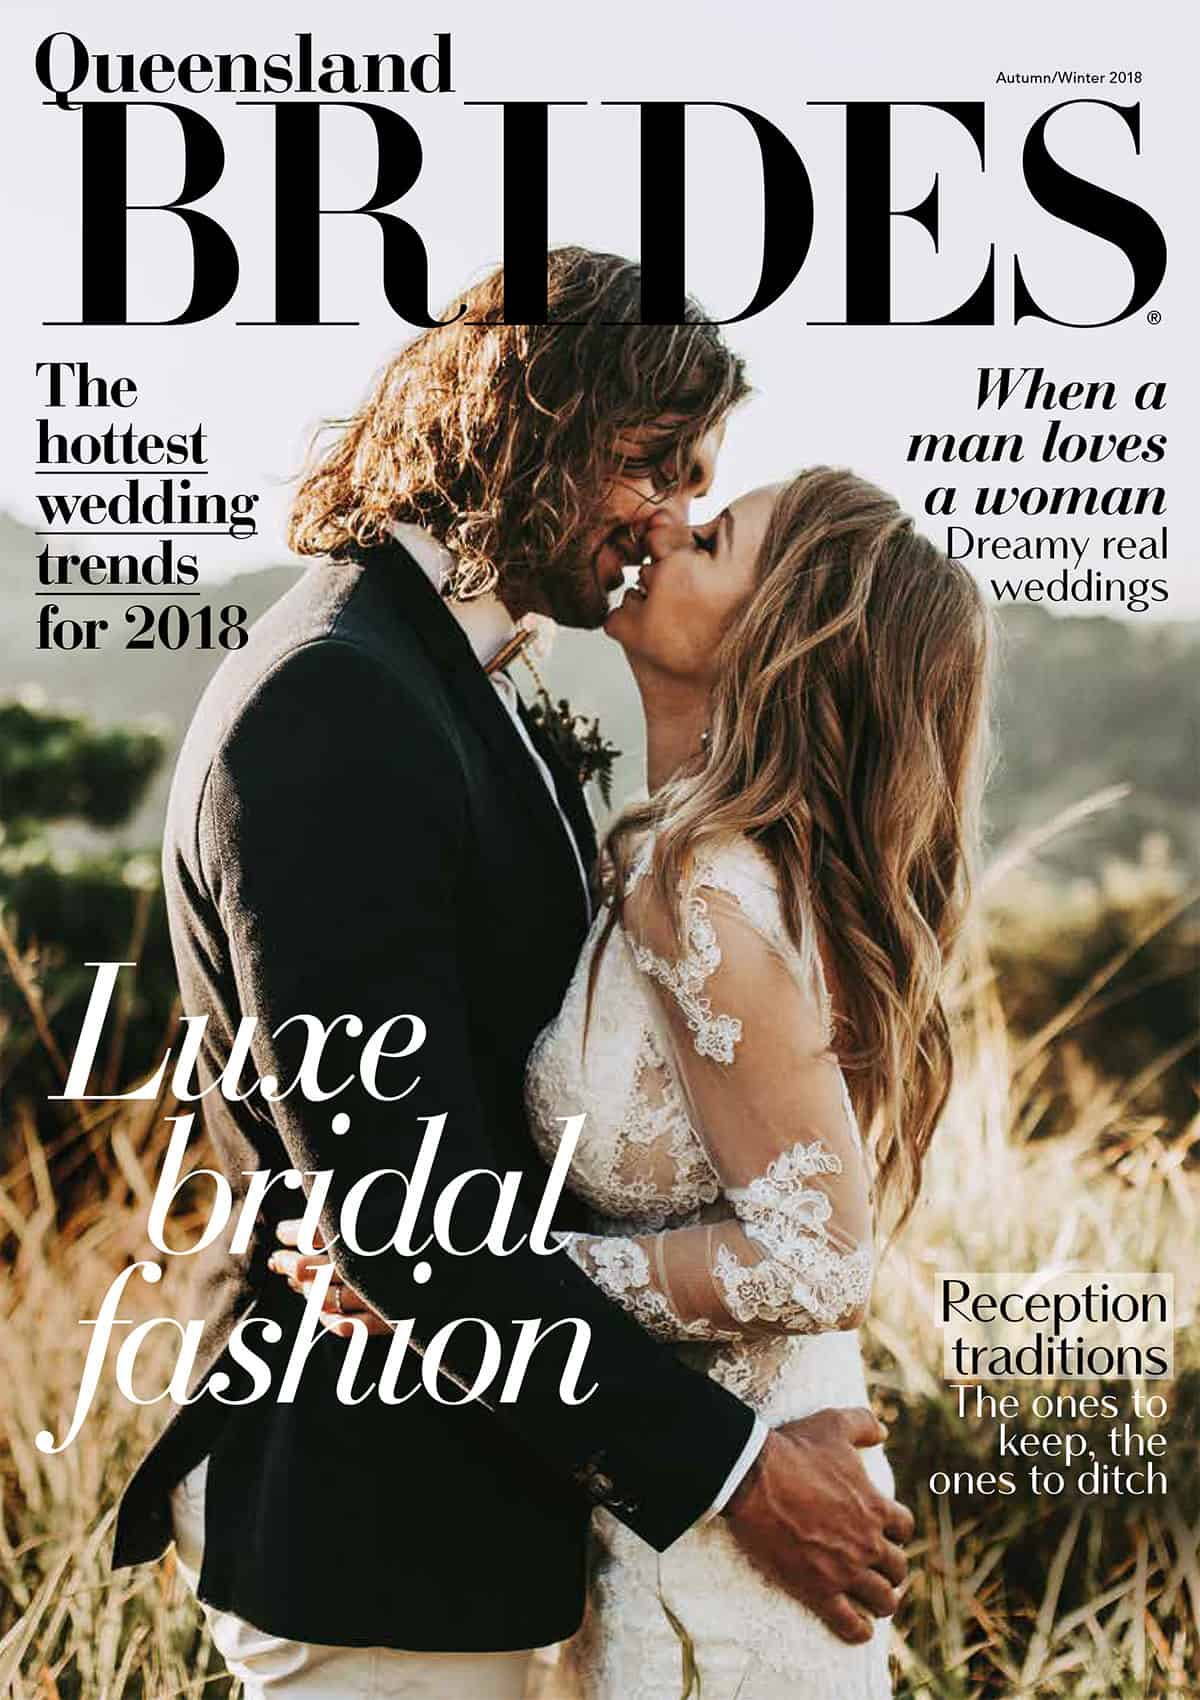 Queensland Brides Autumn Winter 2018 front cover